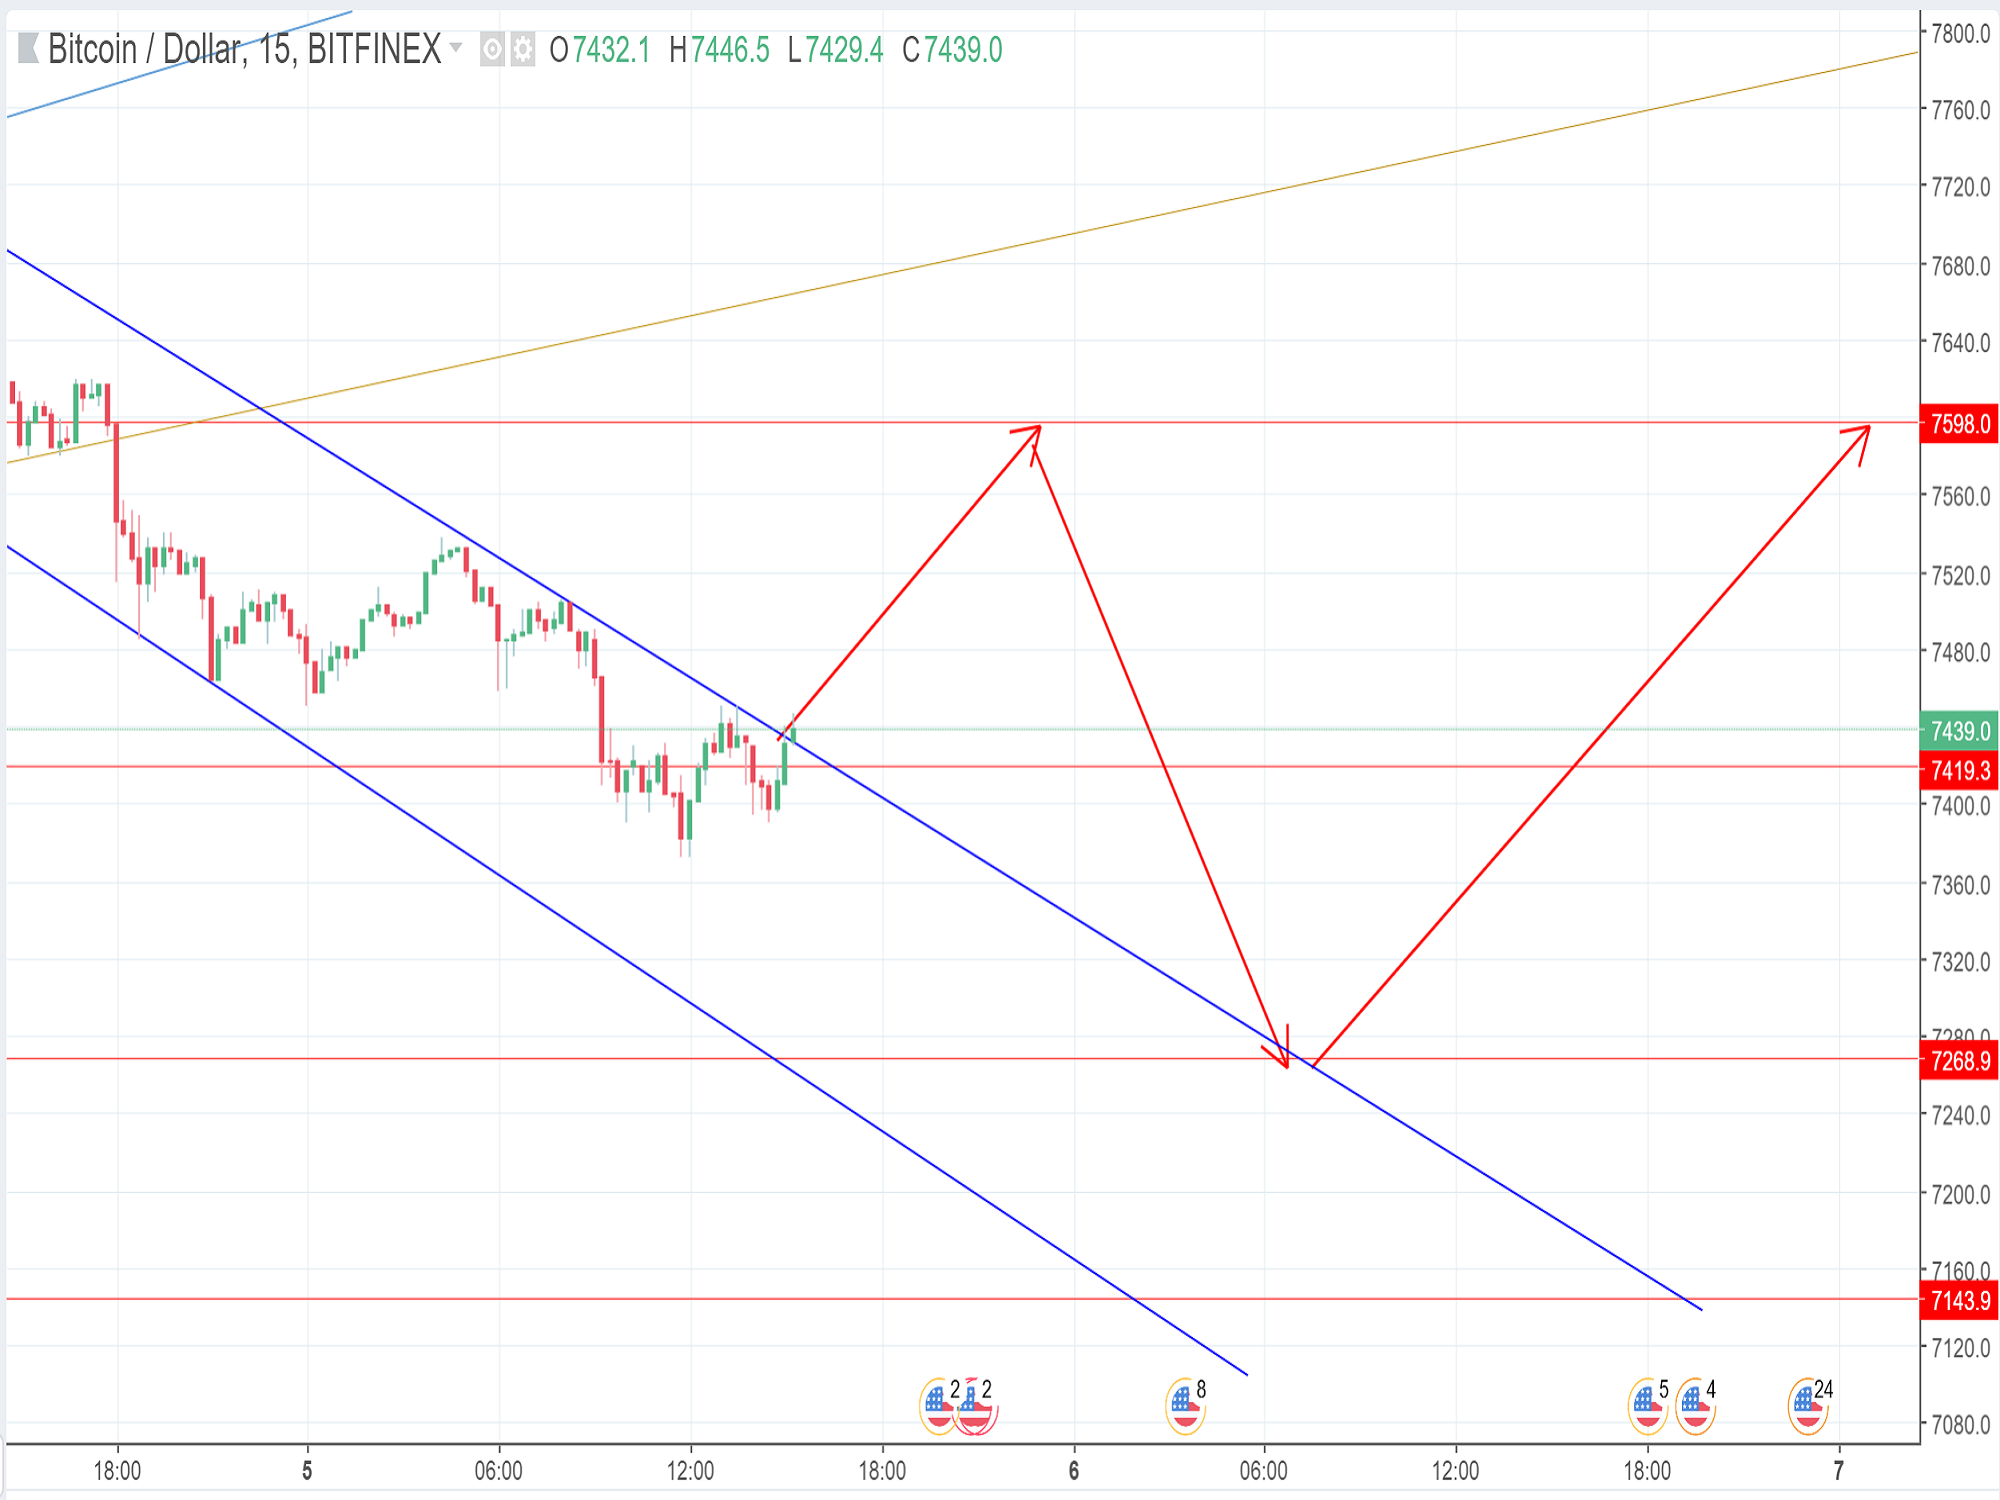 Technical Analysis BTCUSD 05/06/2018